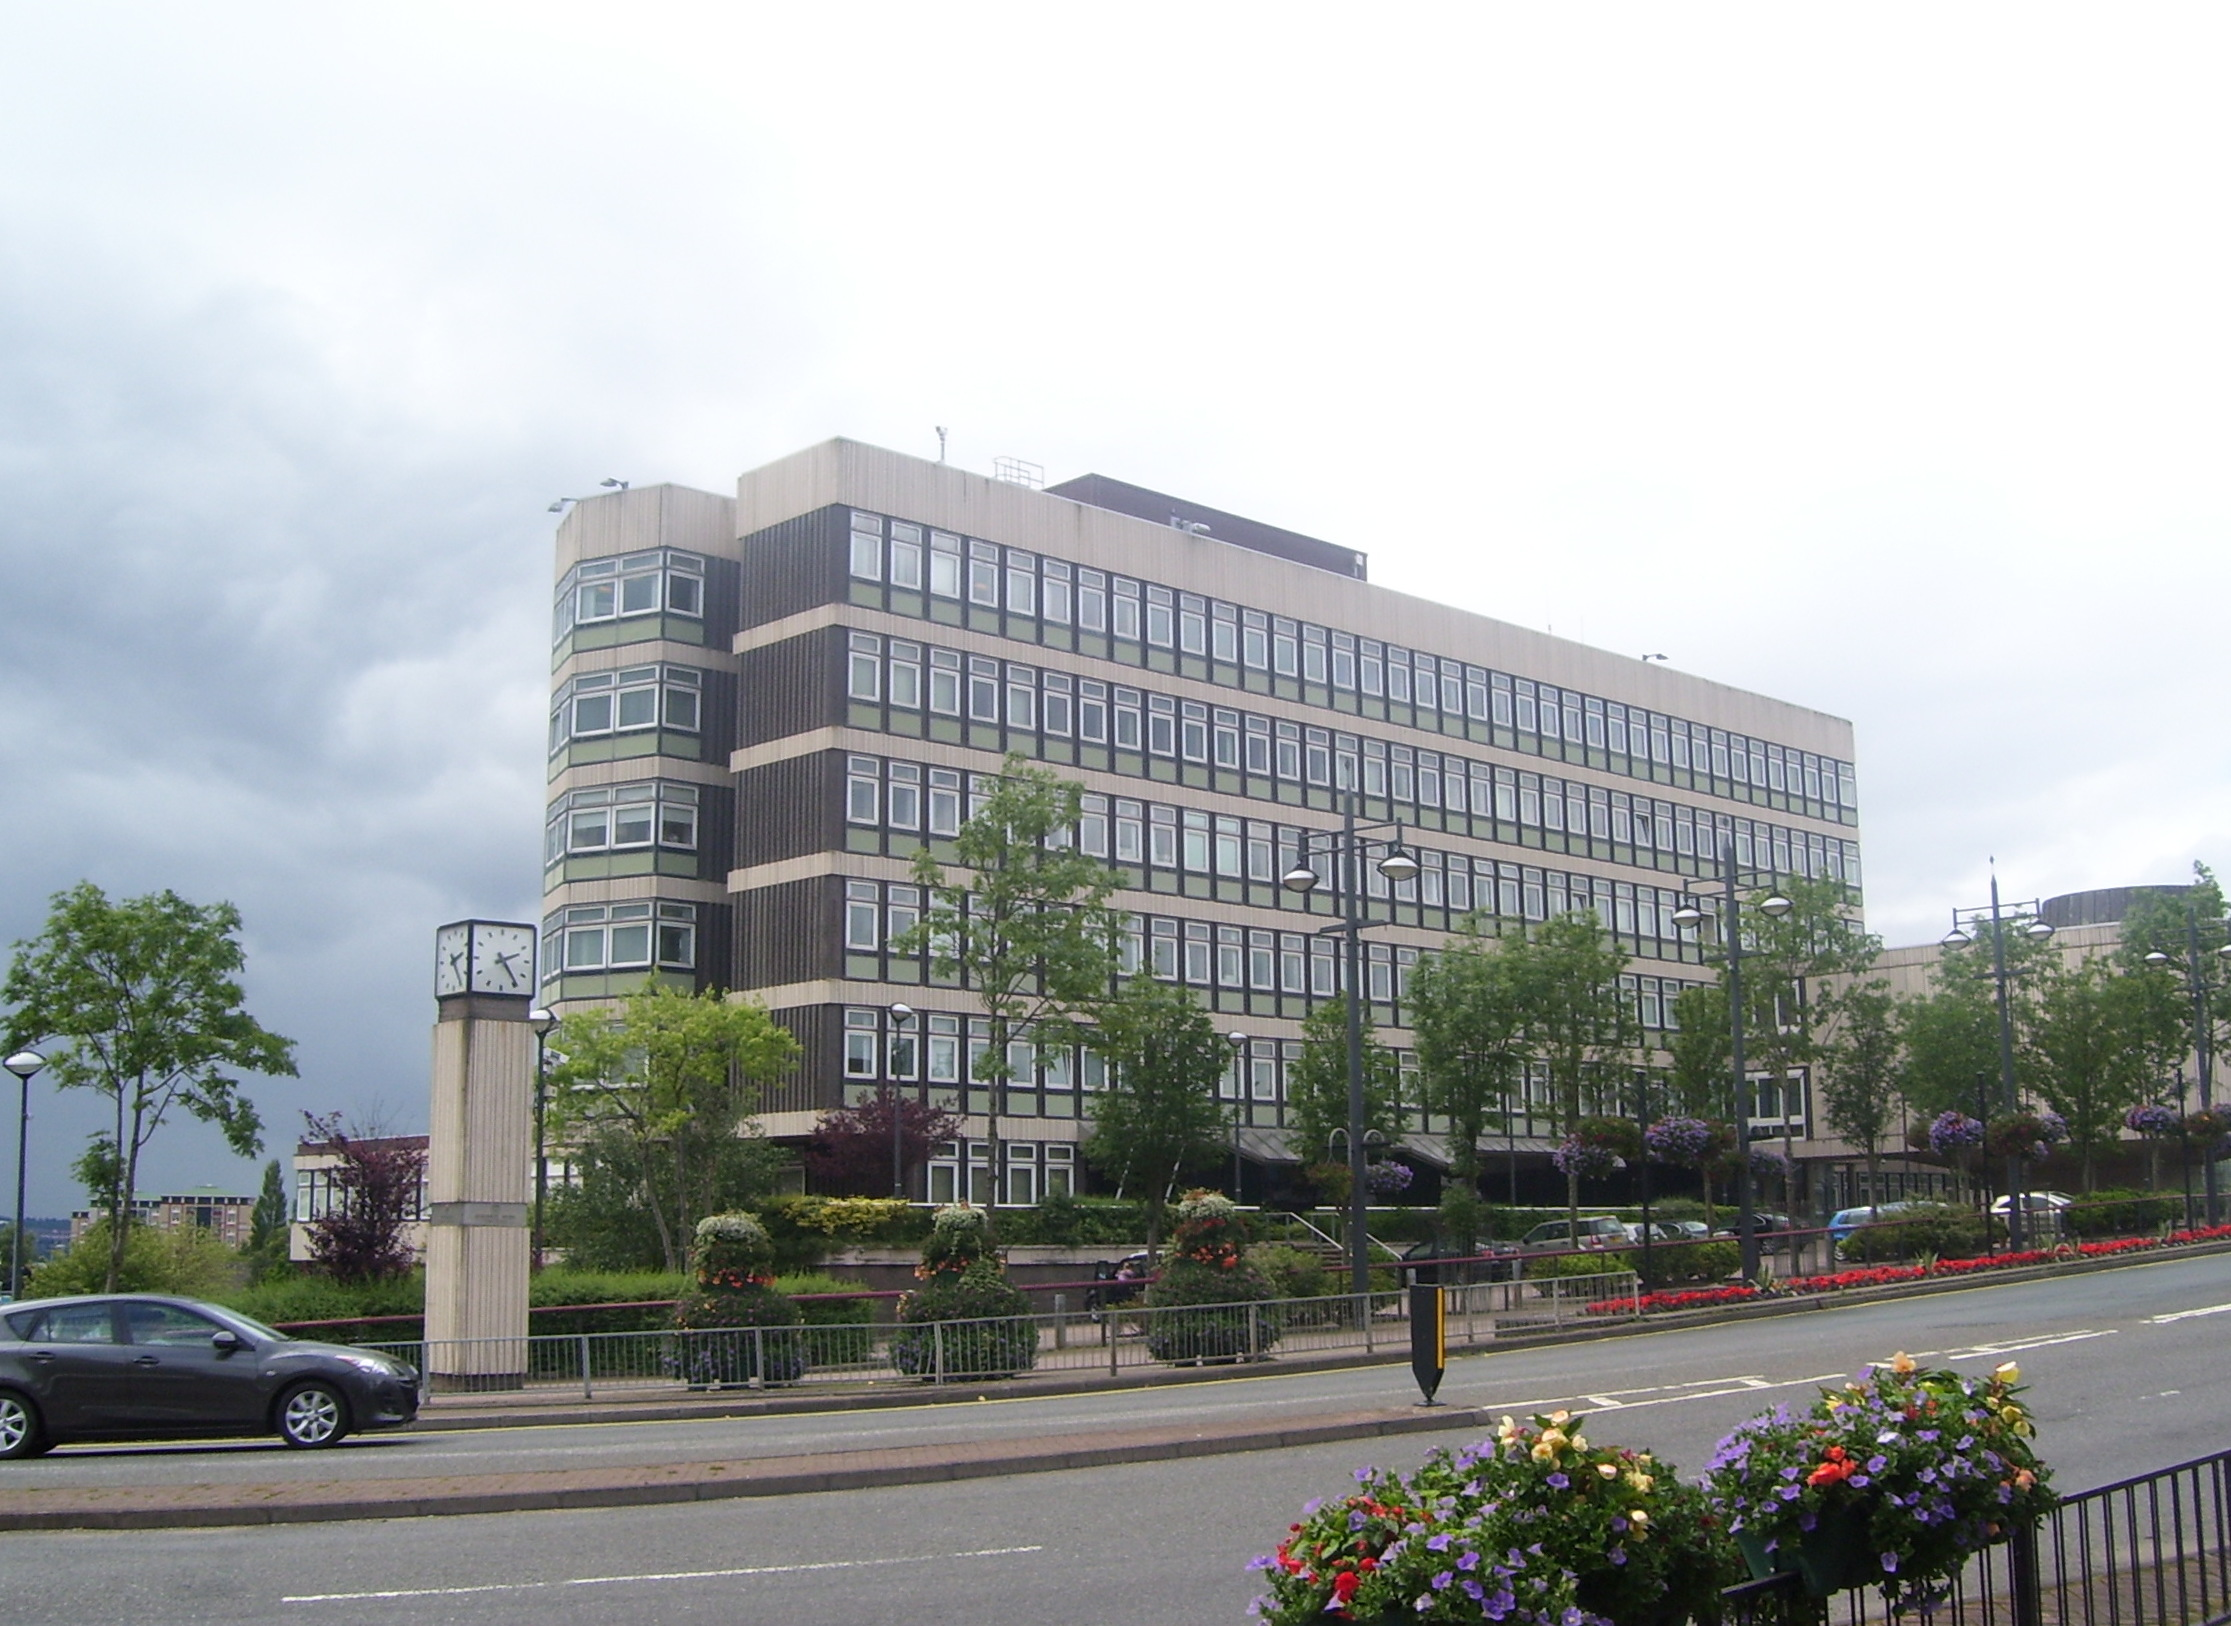 Motherwell Civic Centre, Lanarkshire